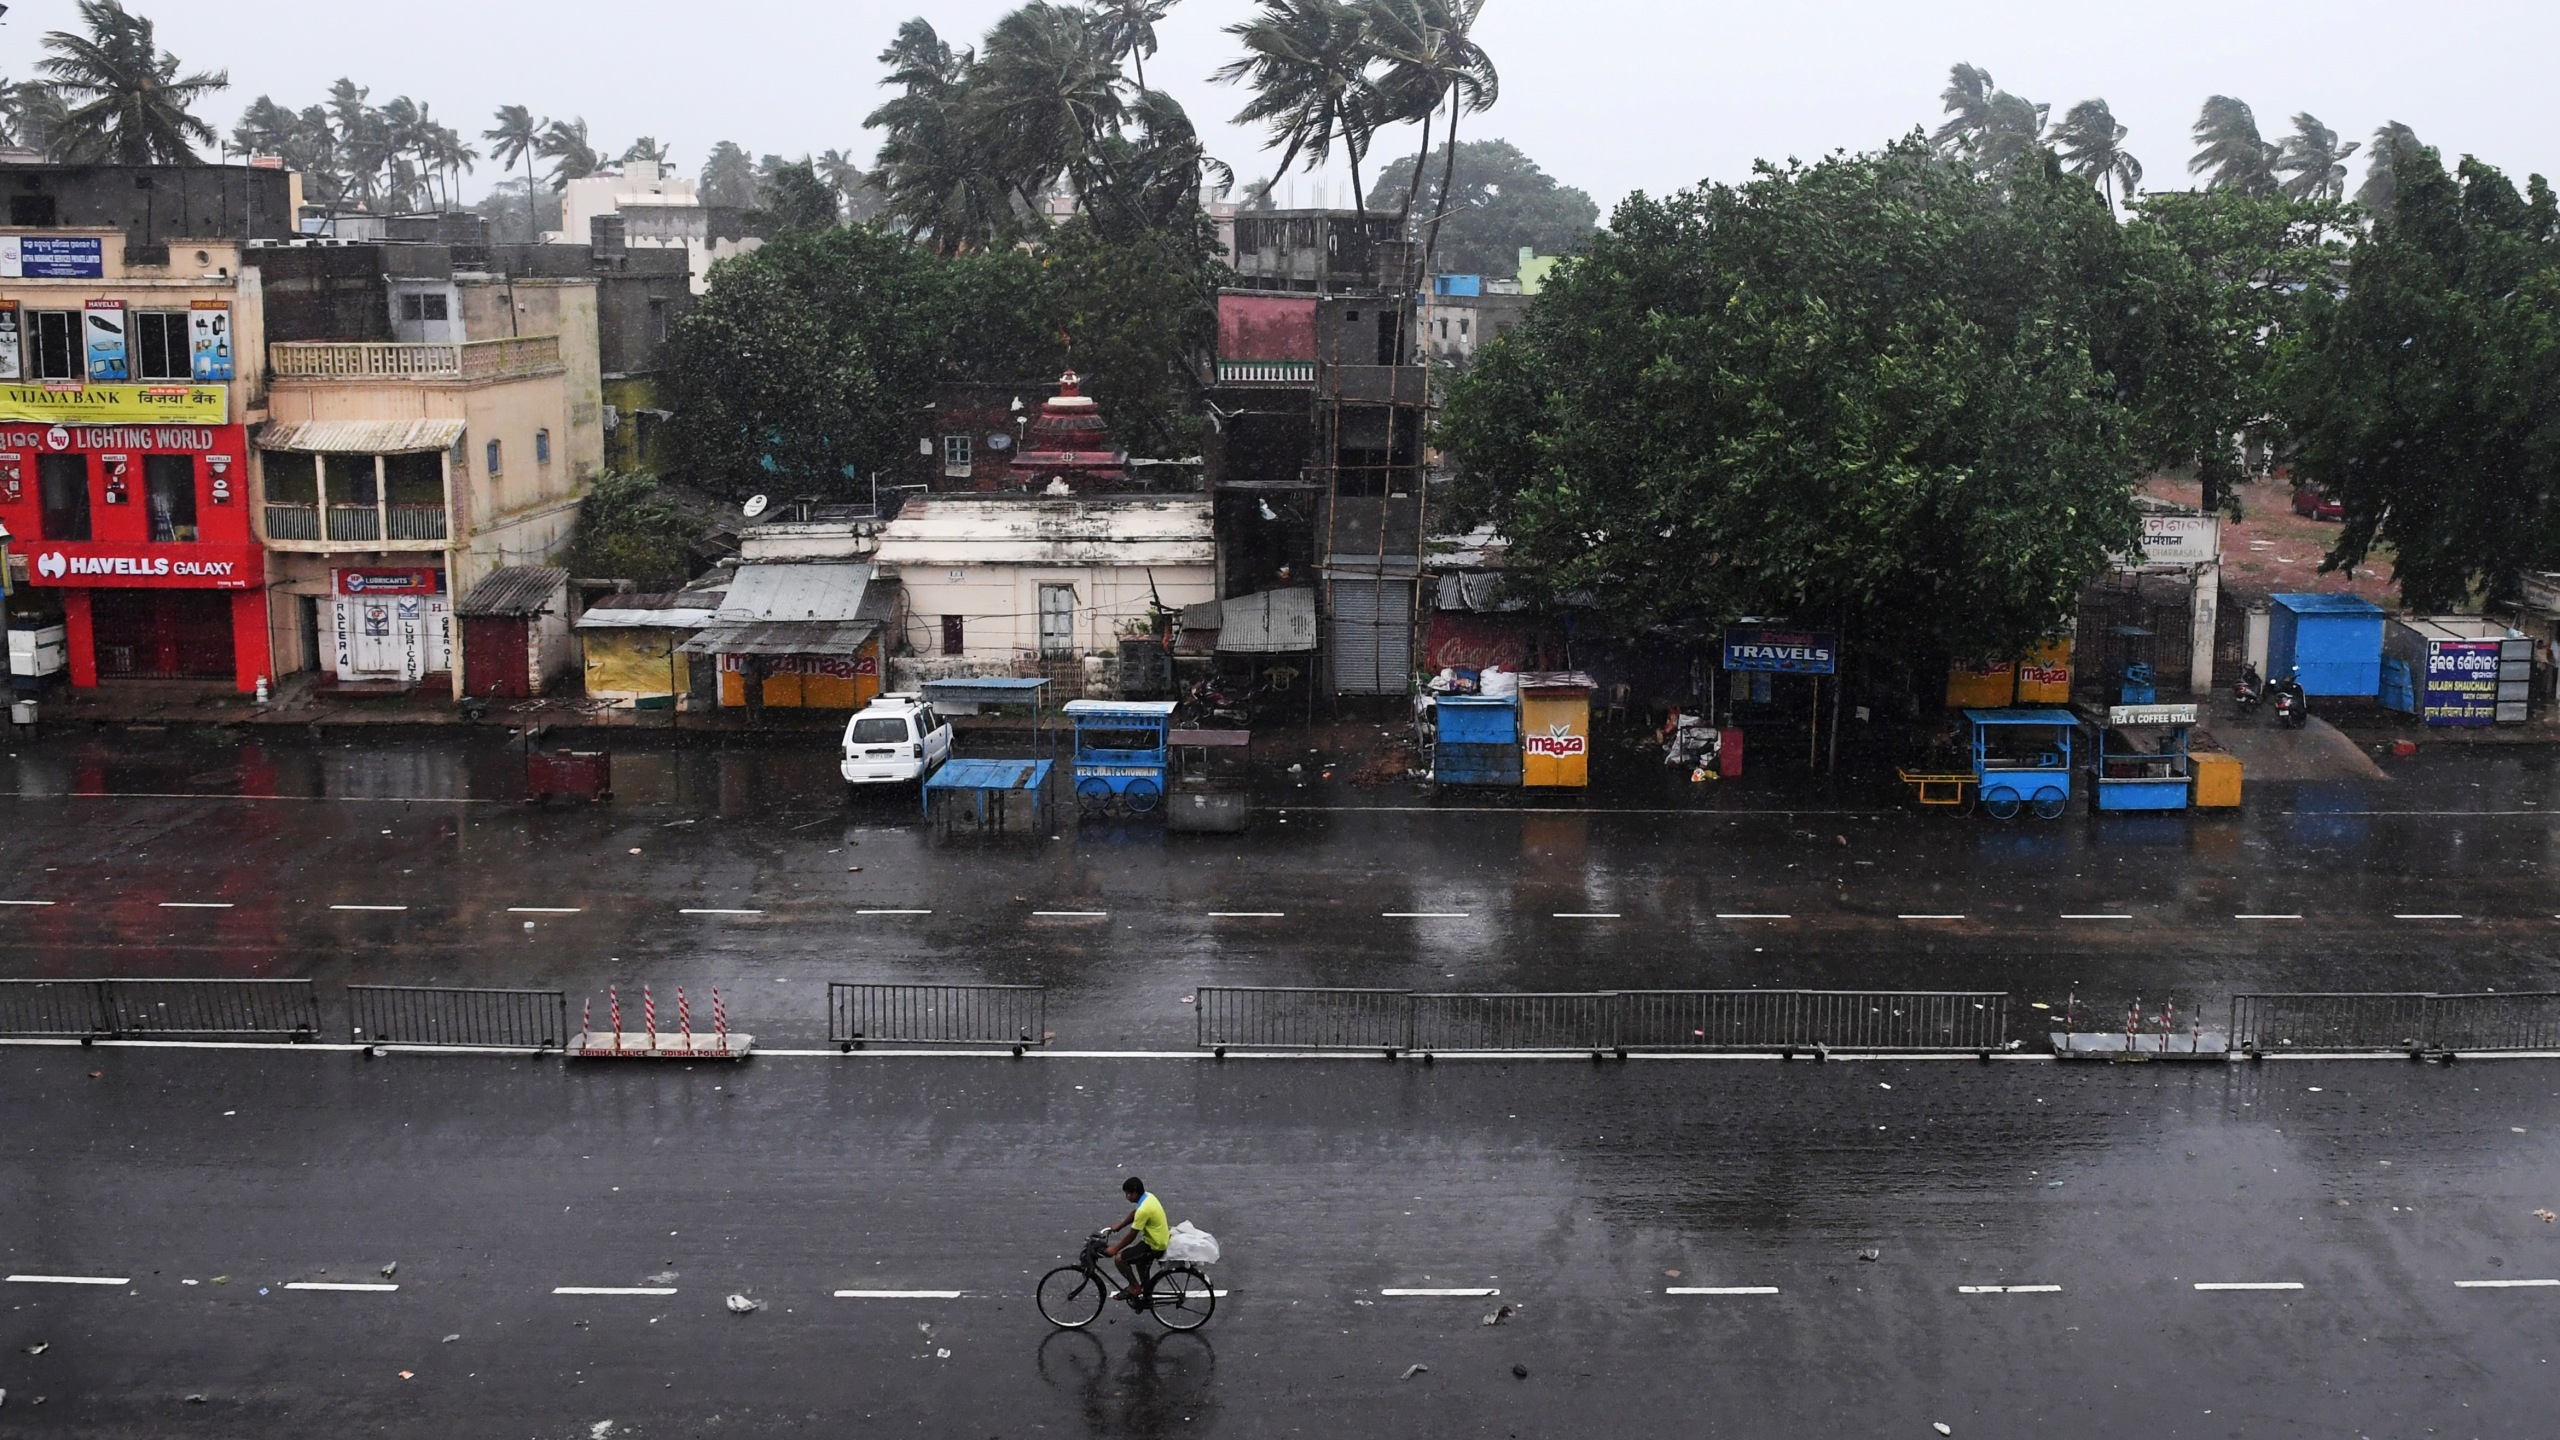 A lone Indian commuter (C) cycles down nearly deserted road in Puri in the eastern Indian state of Odisha early on May 3, 2019, as Cyclone Fani approaches the Indian coastline. (Credit: DIBYANGSHU SARKAR/AFP/Getty Images)